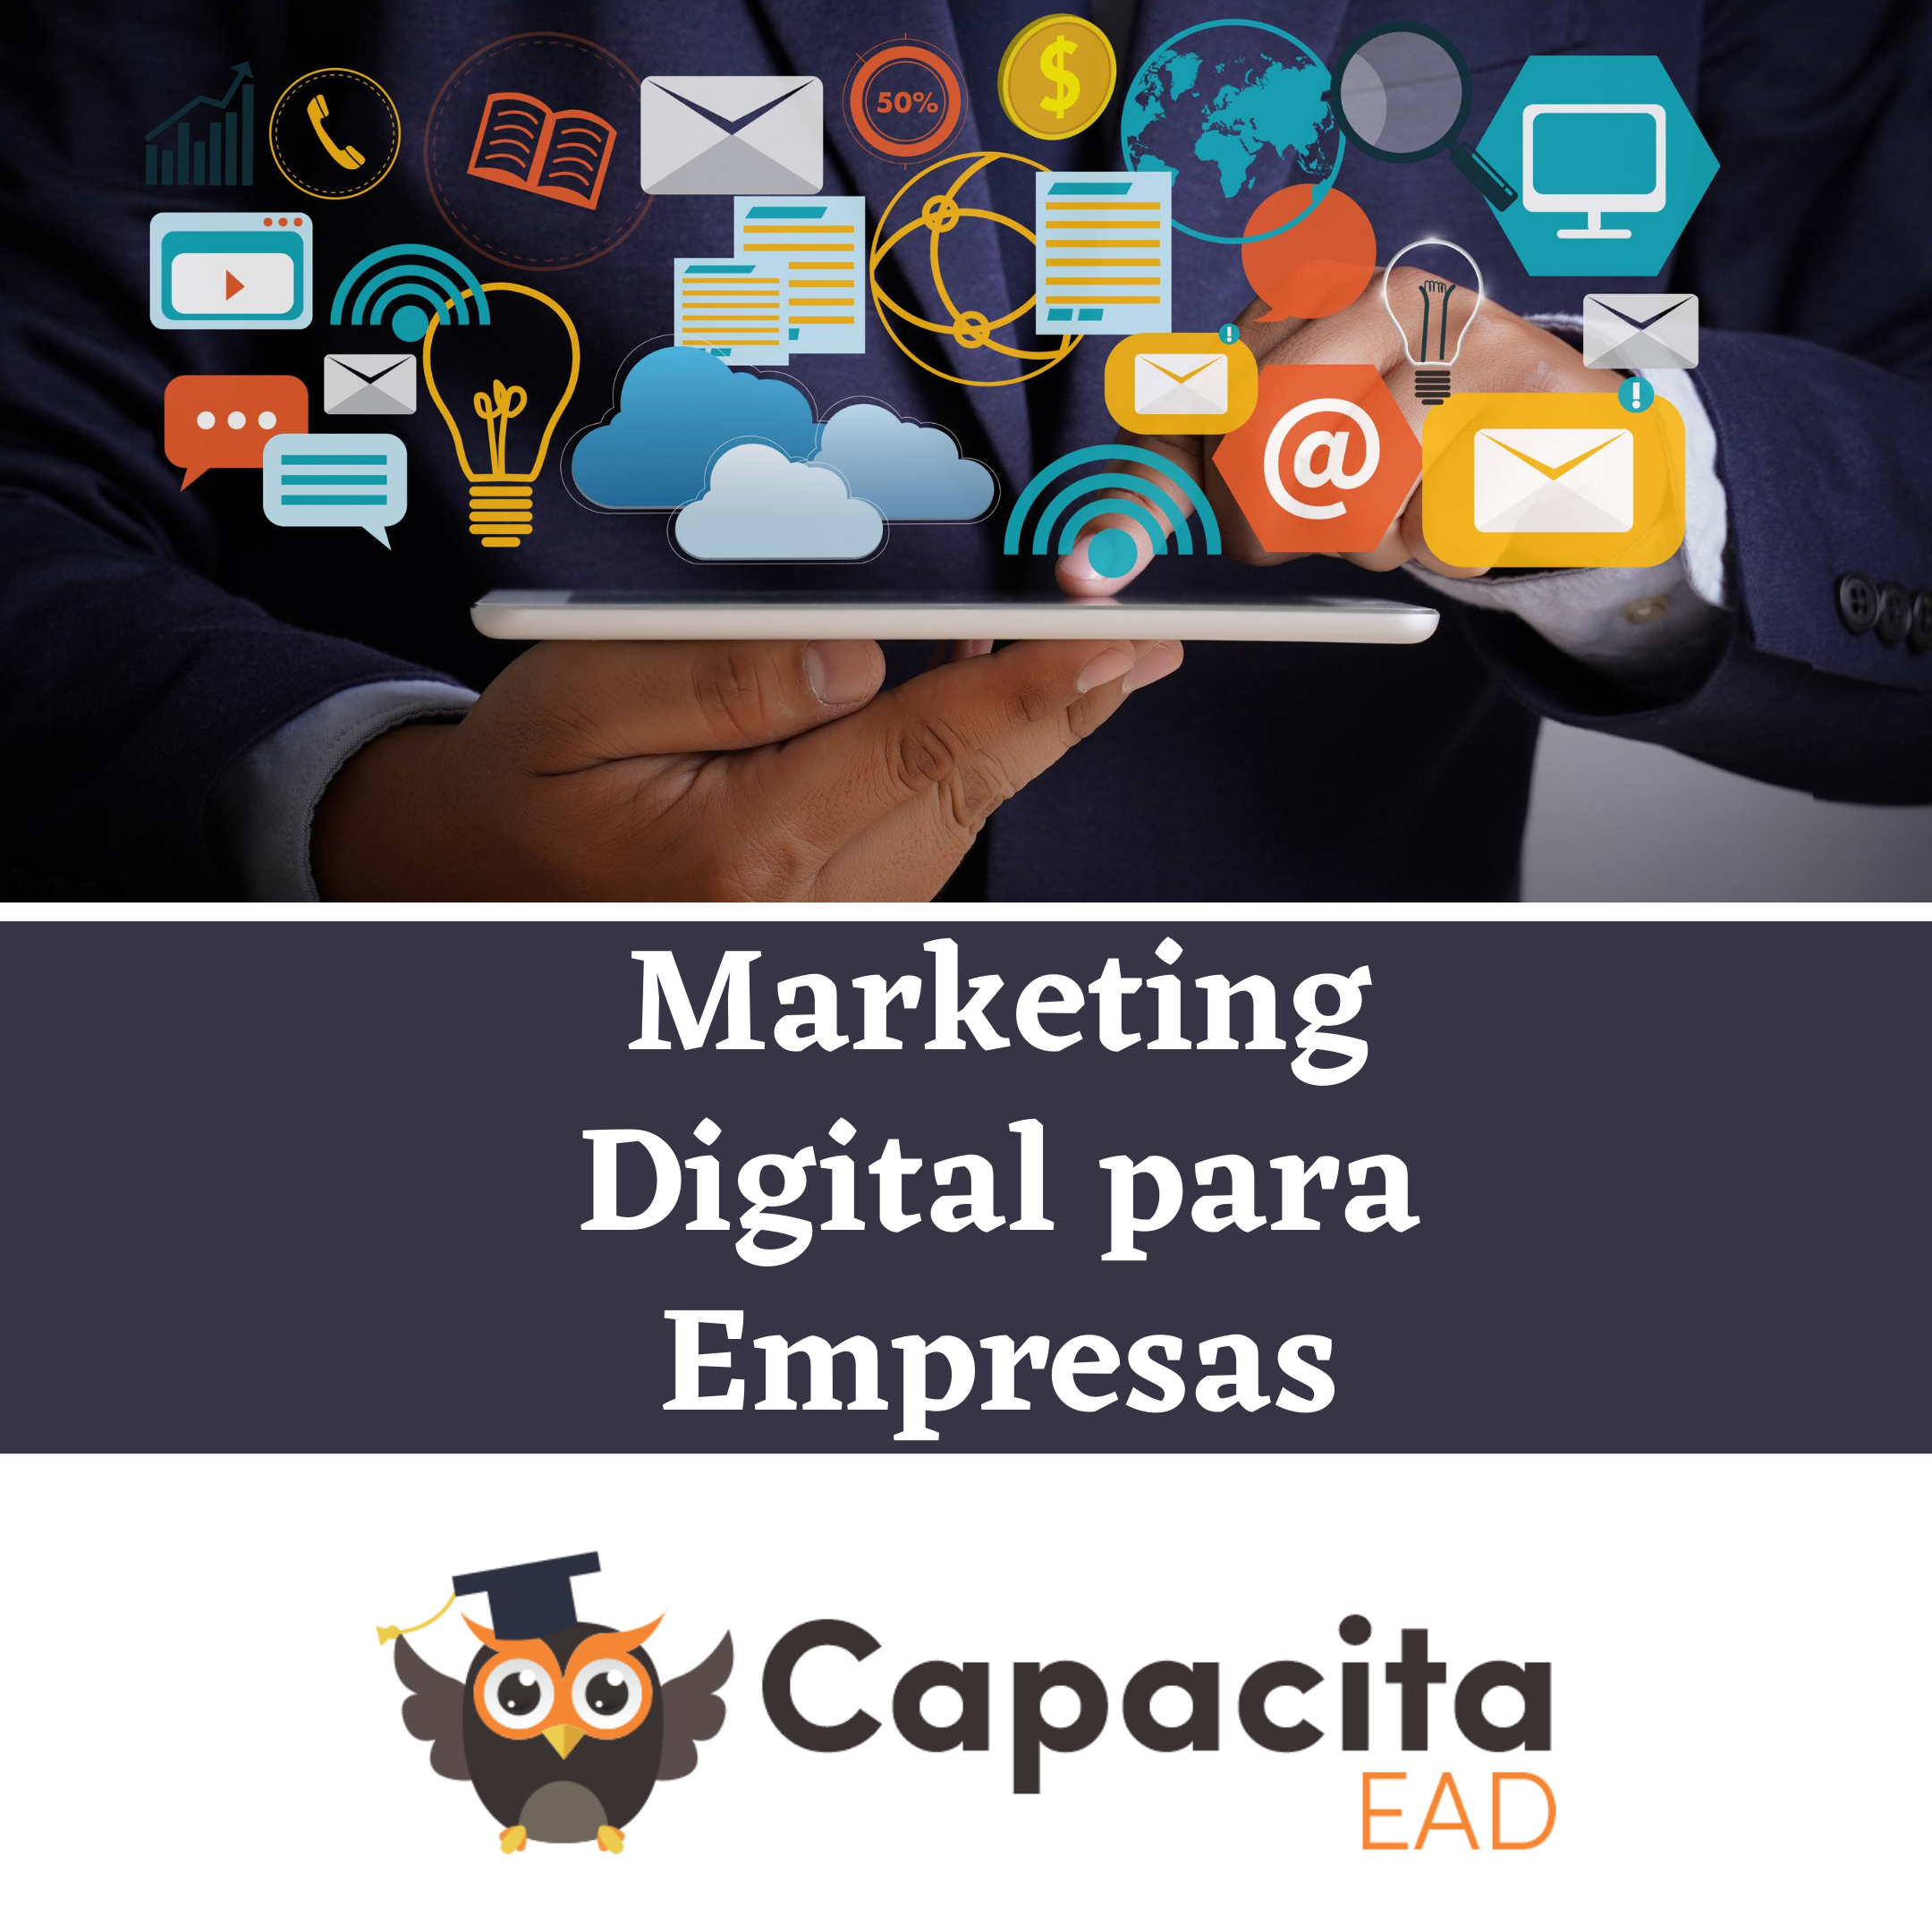 Marketing Digital para Empresas - Cursos Completo